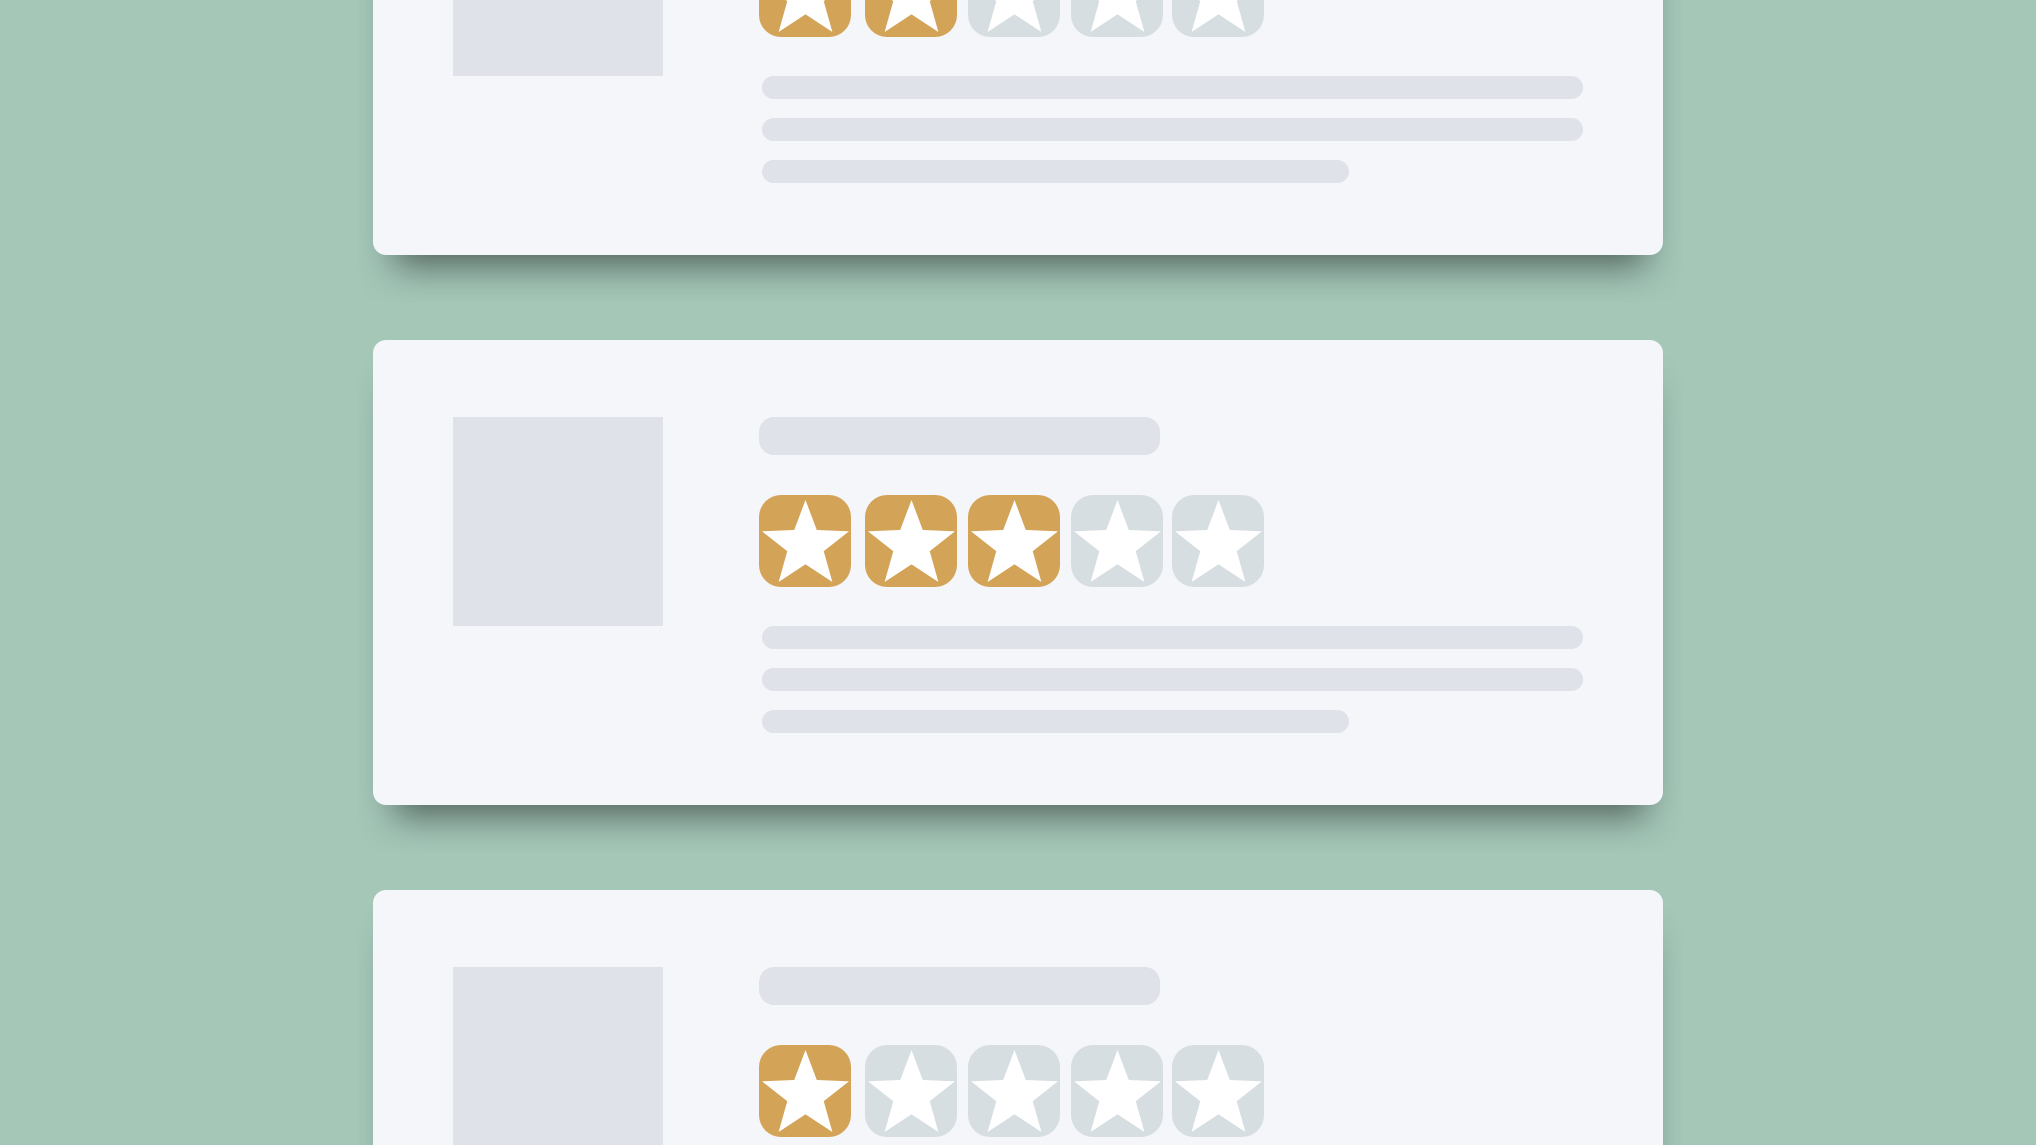 Online reputation has a lot to do with reviews, so this image is of reviews. There are three stacked on top of each other, not touching, over a green background. The top and bottom reviews are only partially showing. On each rectangular review card, all the content is replaced with grey bars to show where content would be. Each review has the star indicators of the opinion of the reviewer. The top has two stars, the bottom has one, and the middle one has three.